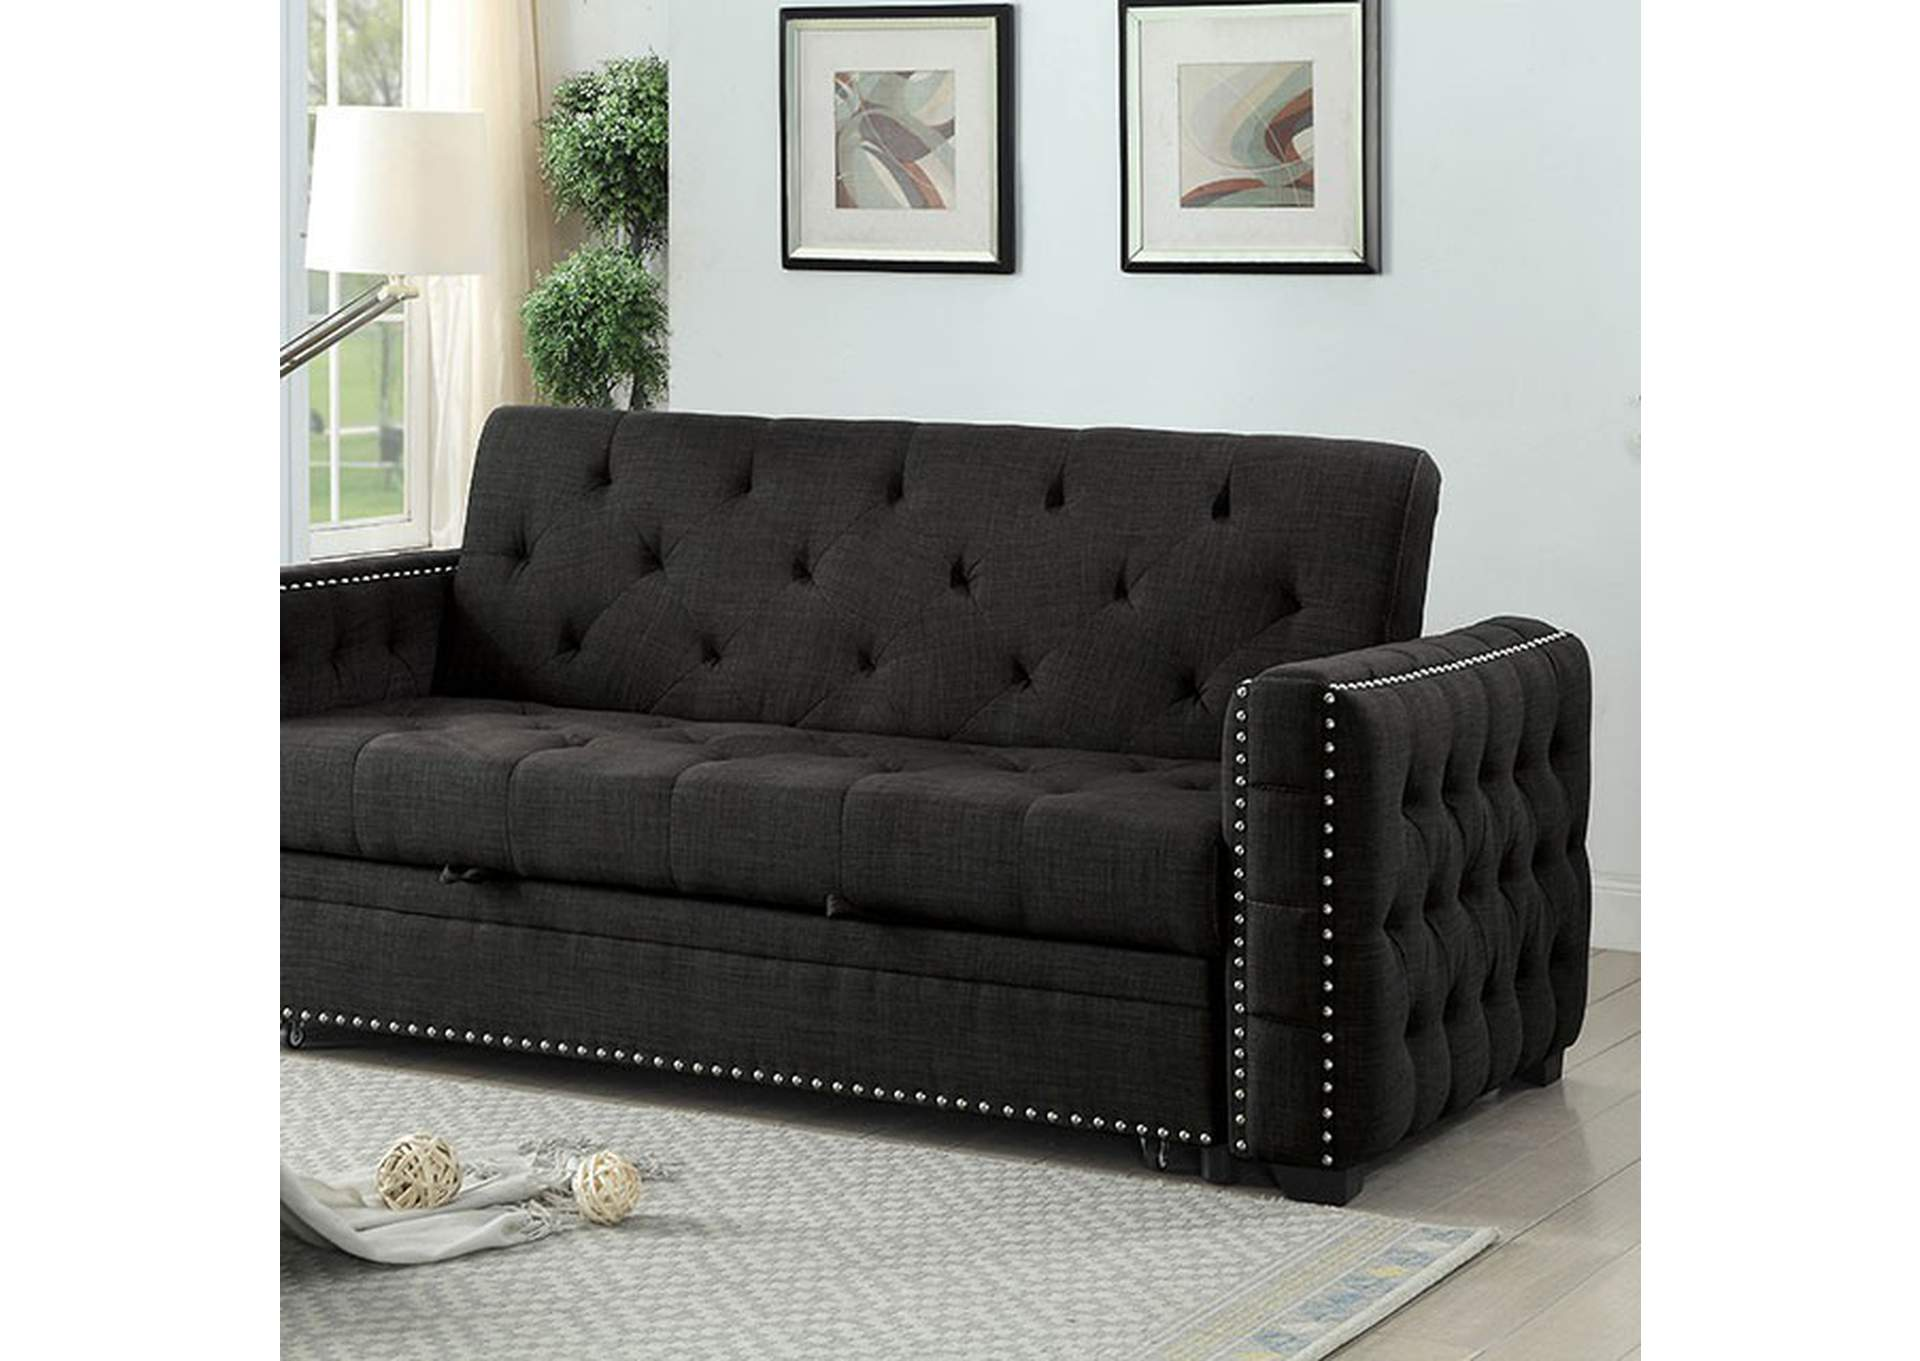 Leonora Futon Sofa,Furniture of America